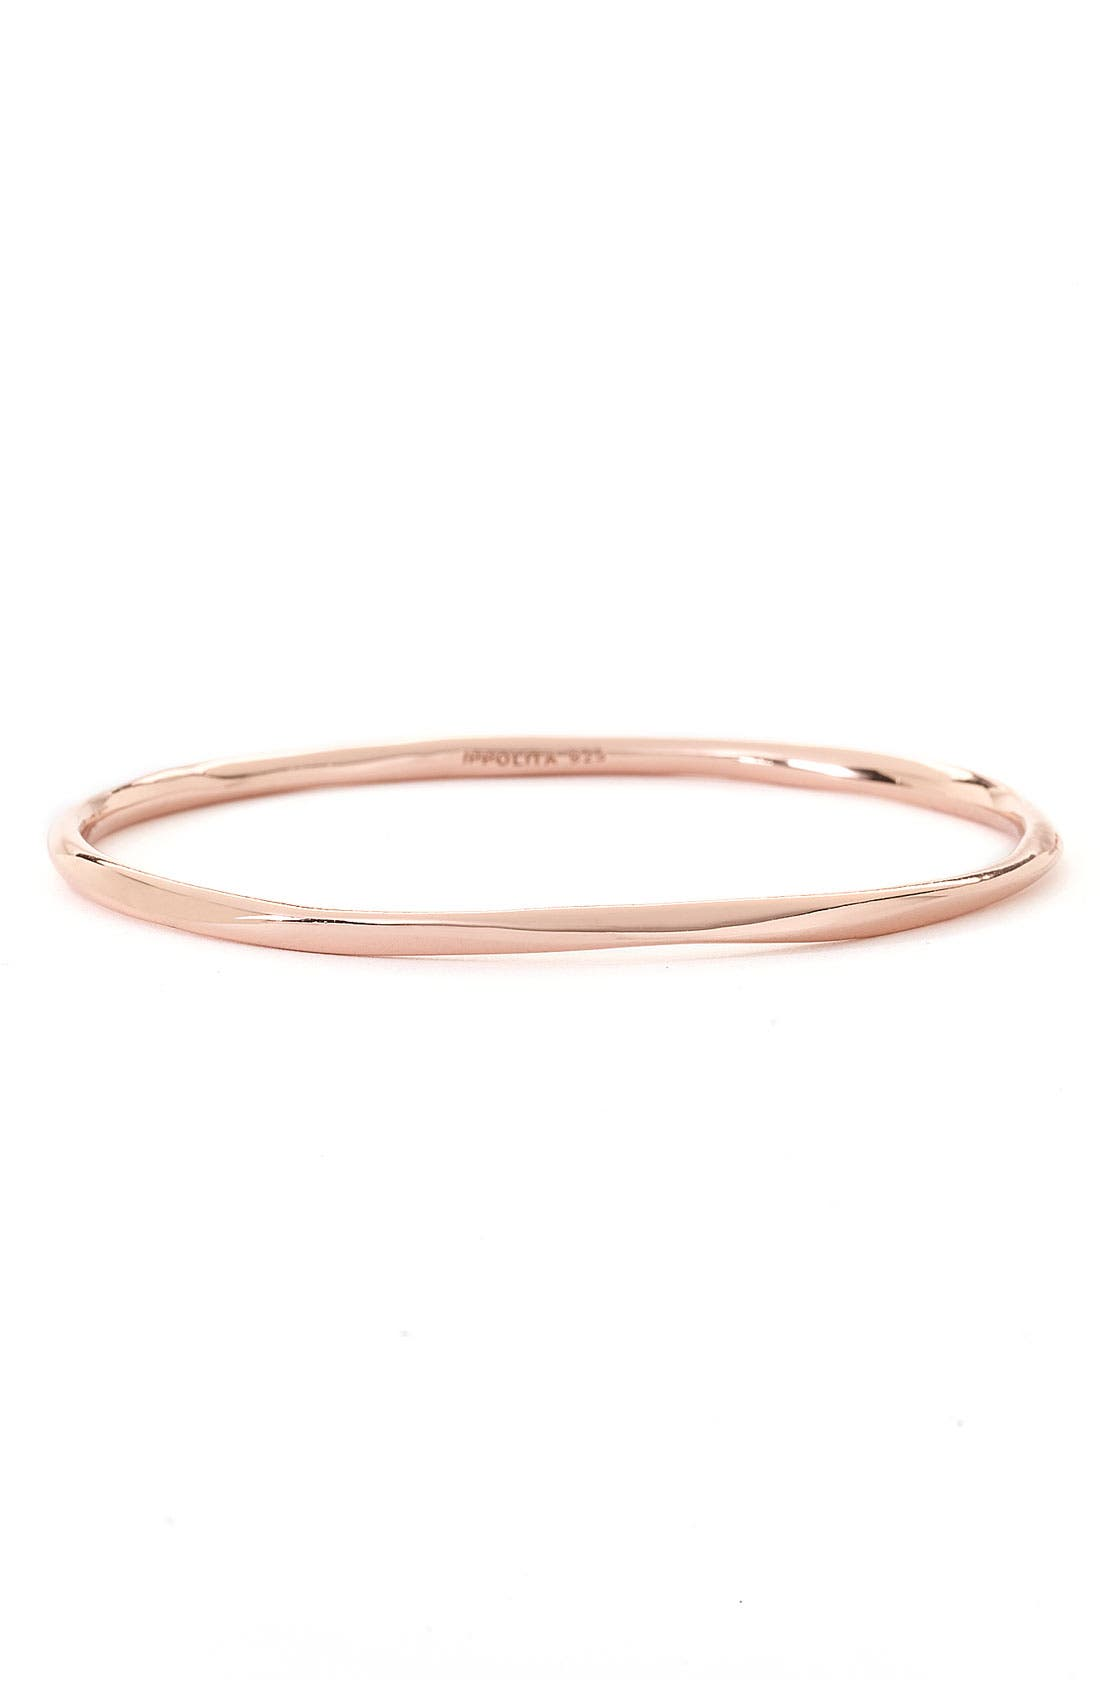 Alternate Image 1 Selected - Ippolita 'Shiny Squiggle' Rosé Bangle